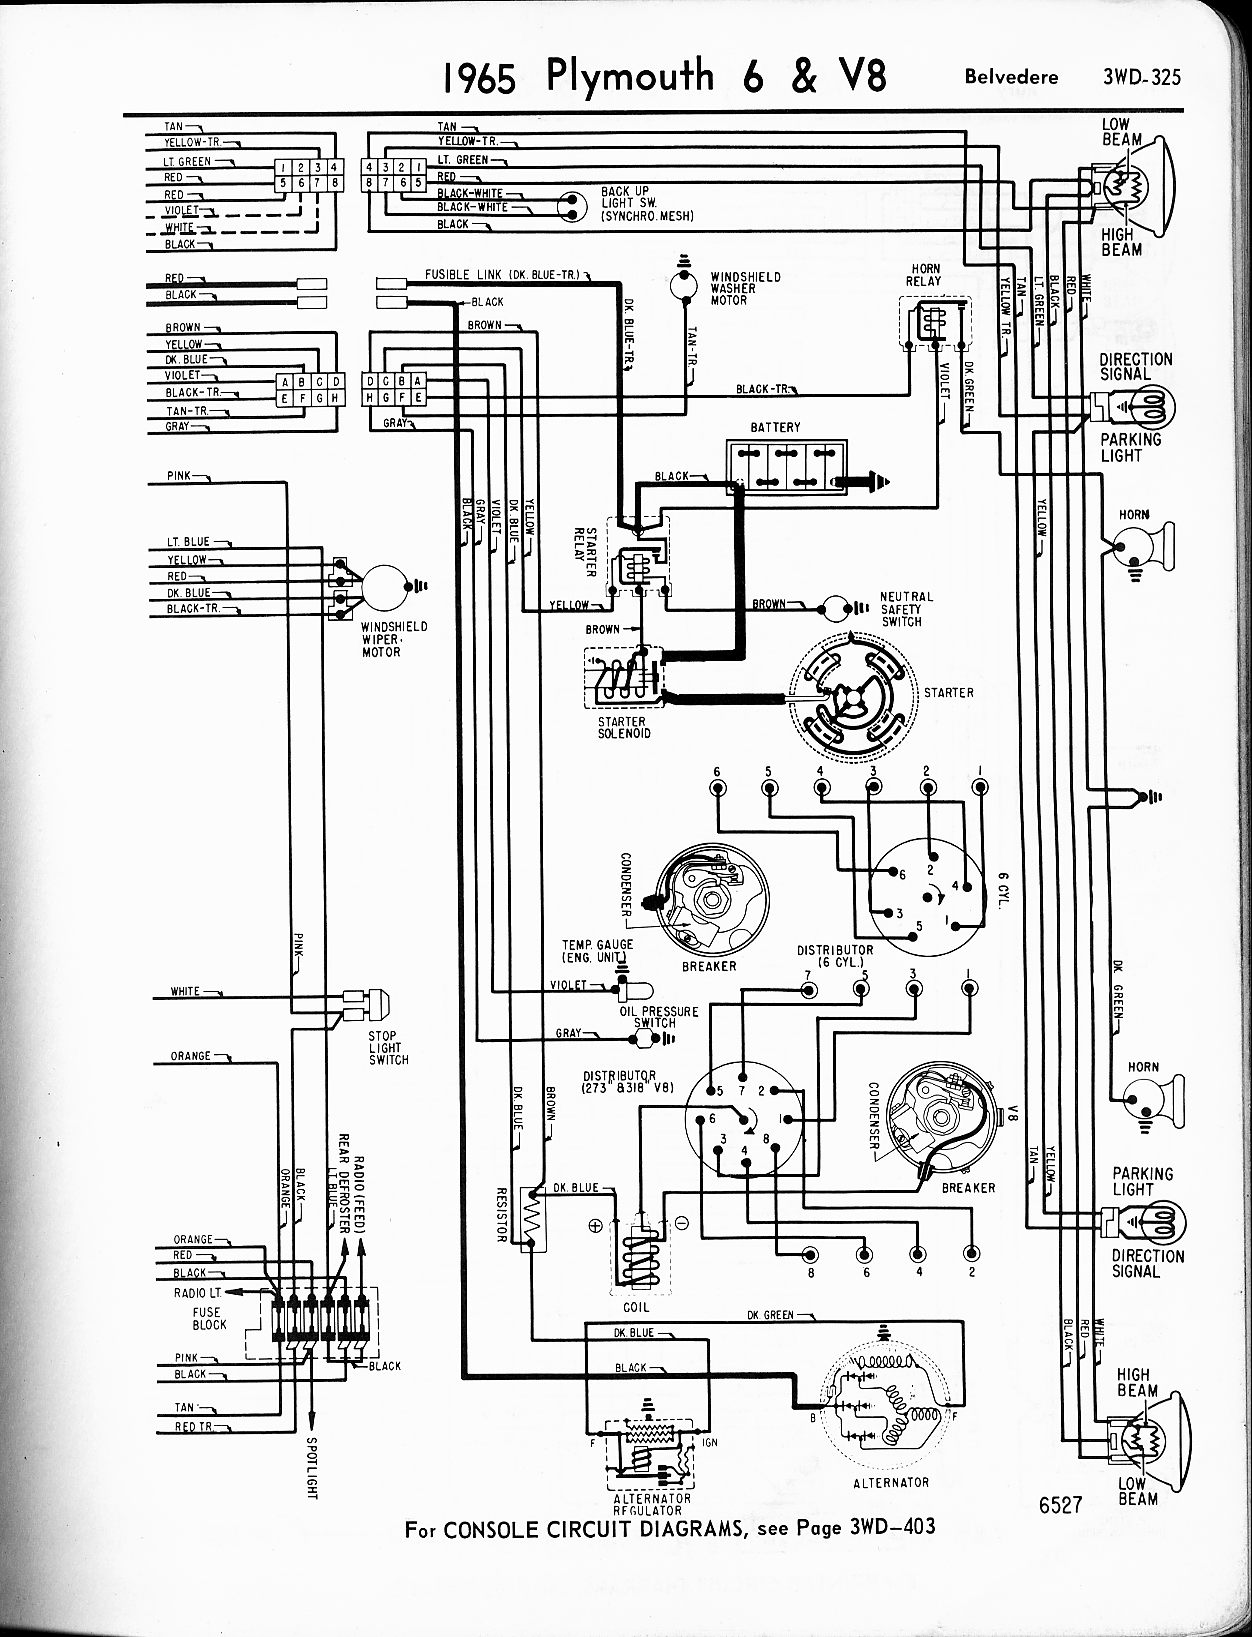 Plymouth Engine Schematics Anything Wiring Diagrams 1956 1965 The Old Car Manual Project Rh Oldcarmanualproject Com Breakdown V8 Diagram